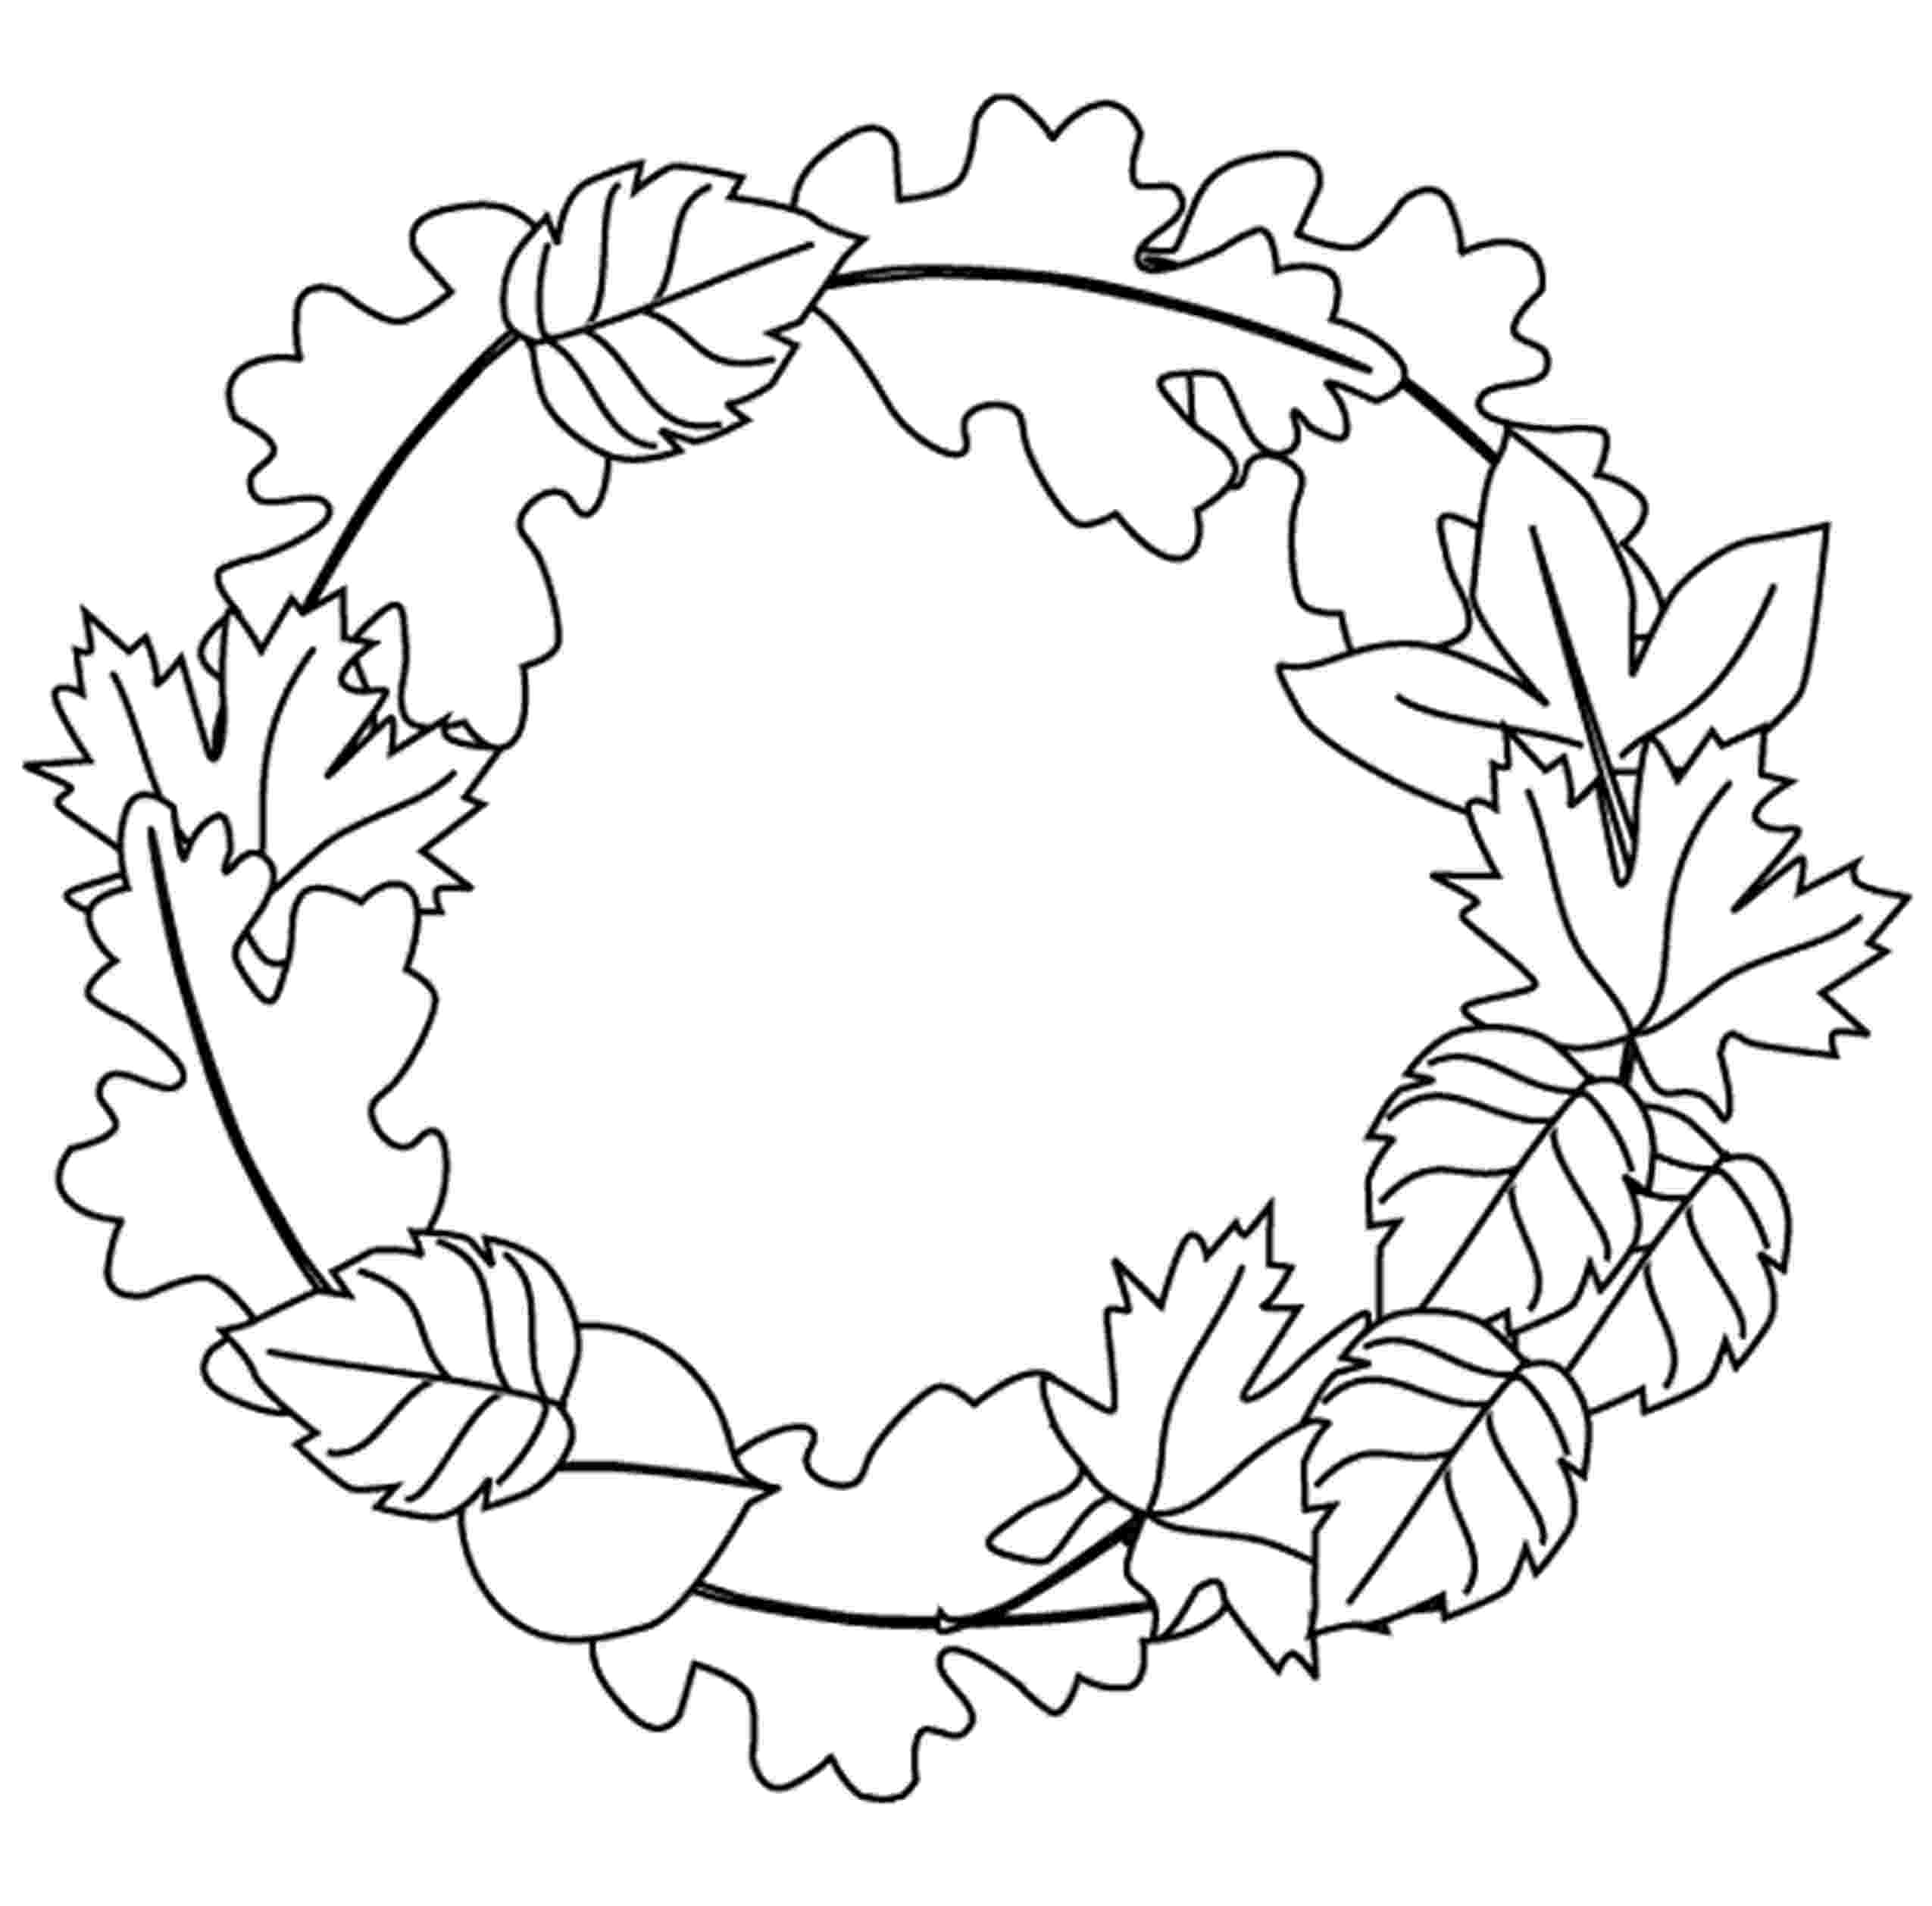 coloring leaves tree leaves coloring pages for kids to print for free coloring leaves